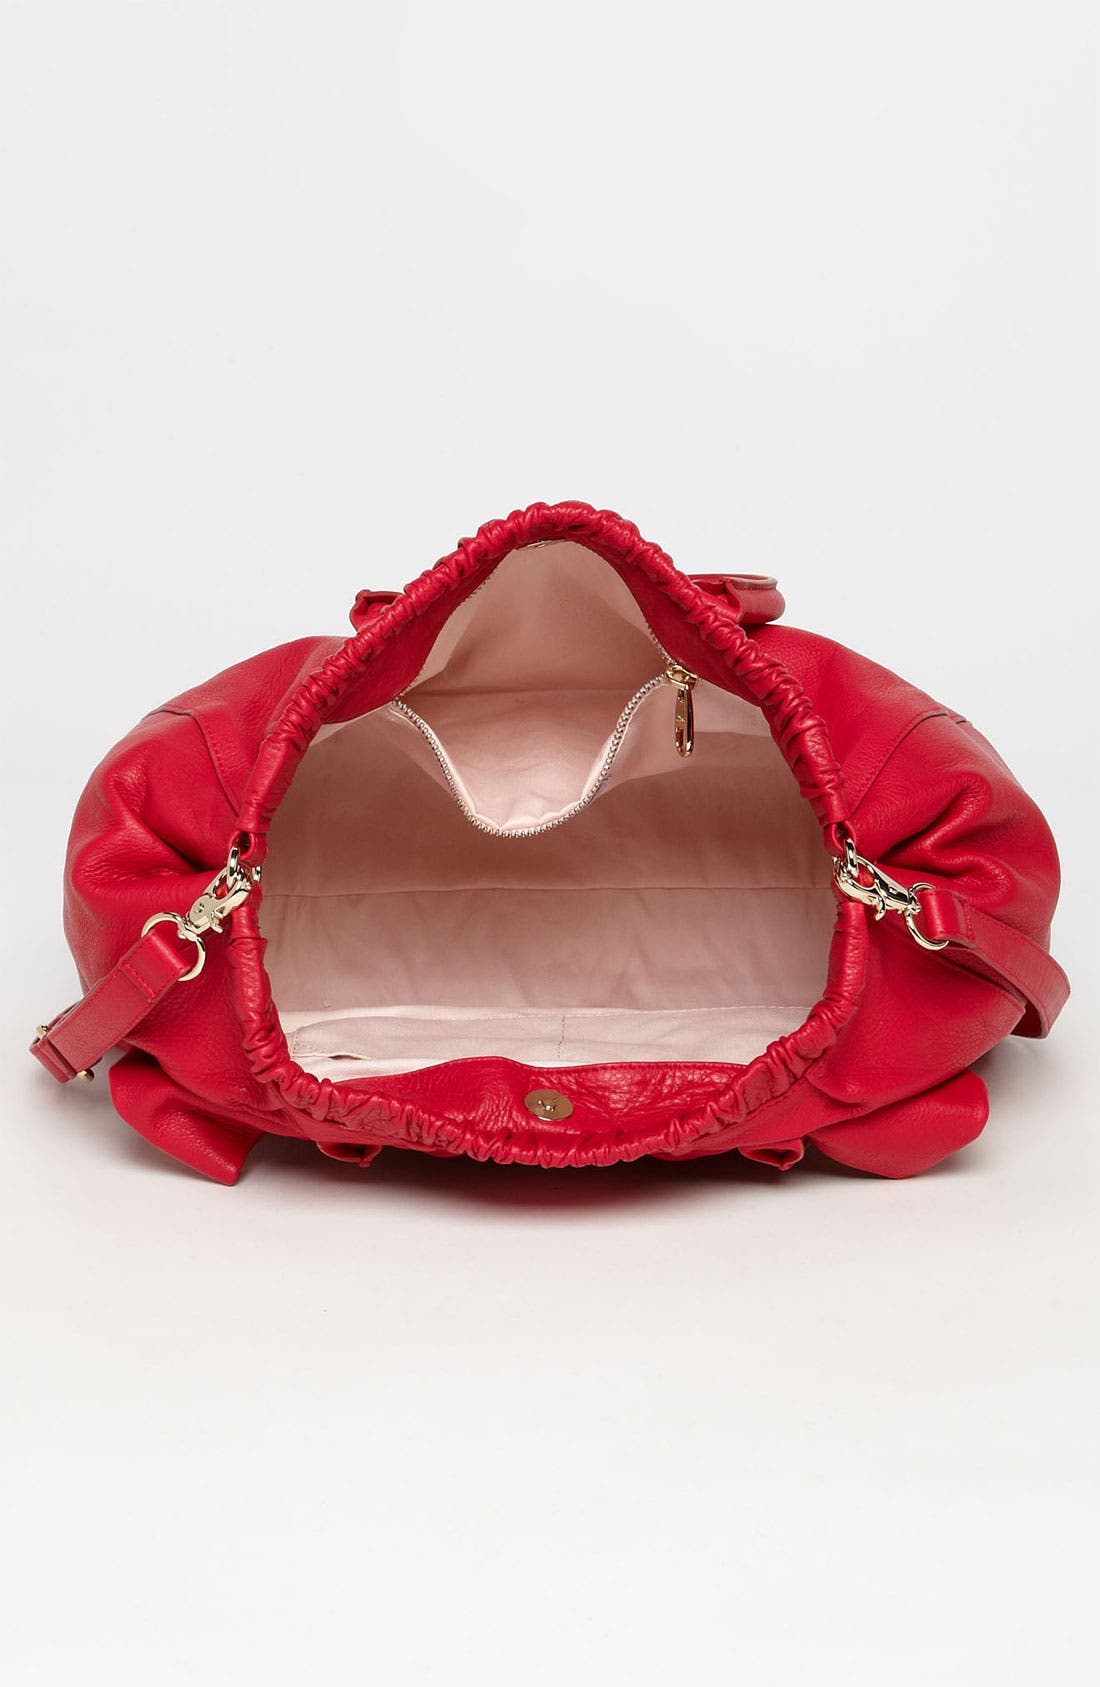 Alternate Image 3  - RED Valentino 'Bow' Top Handle Bag